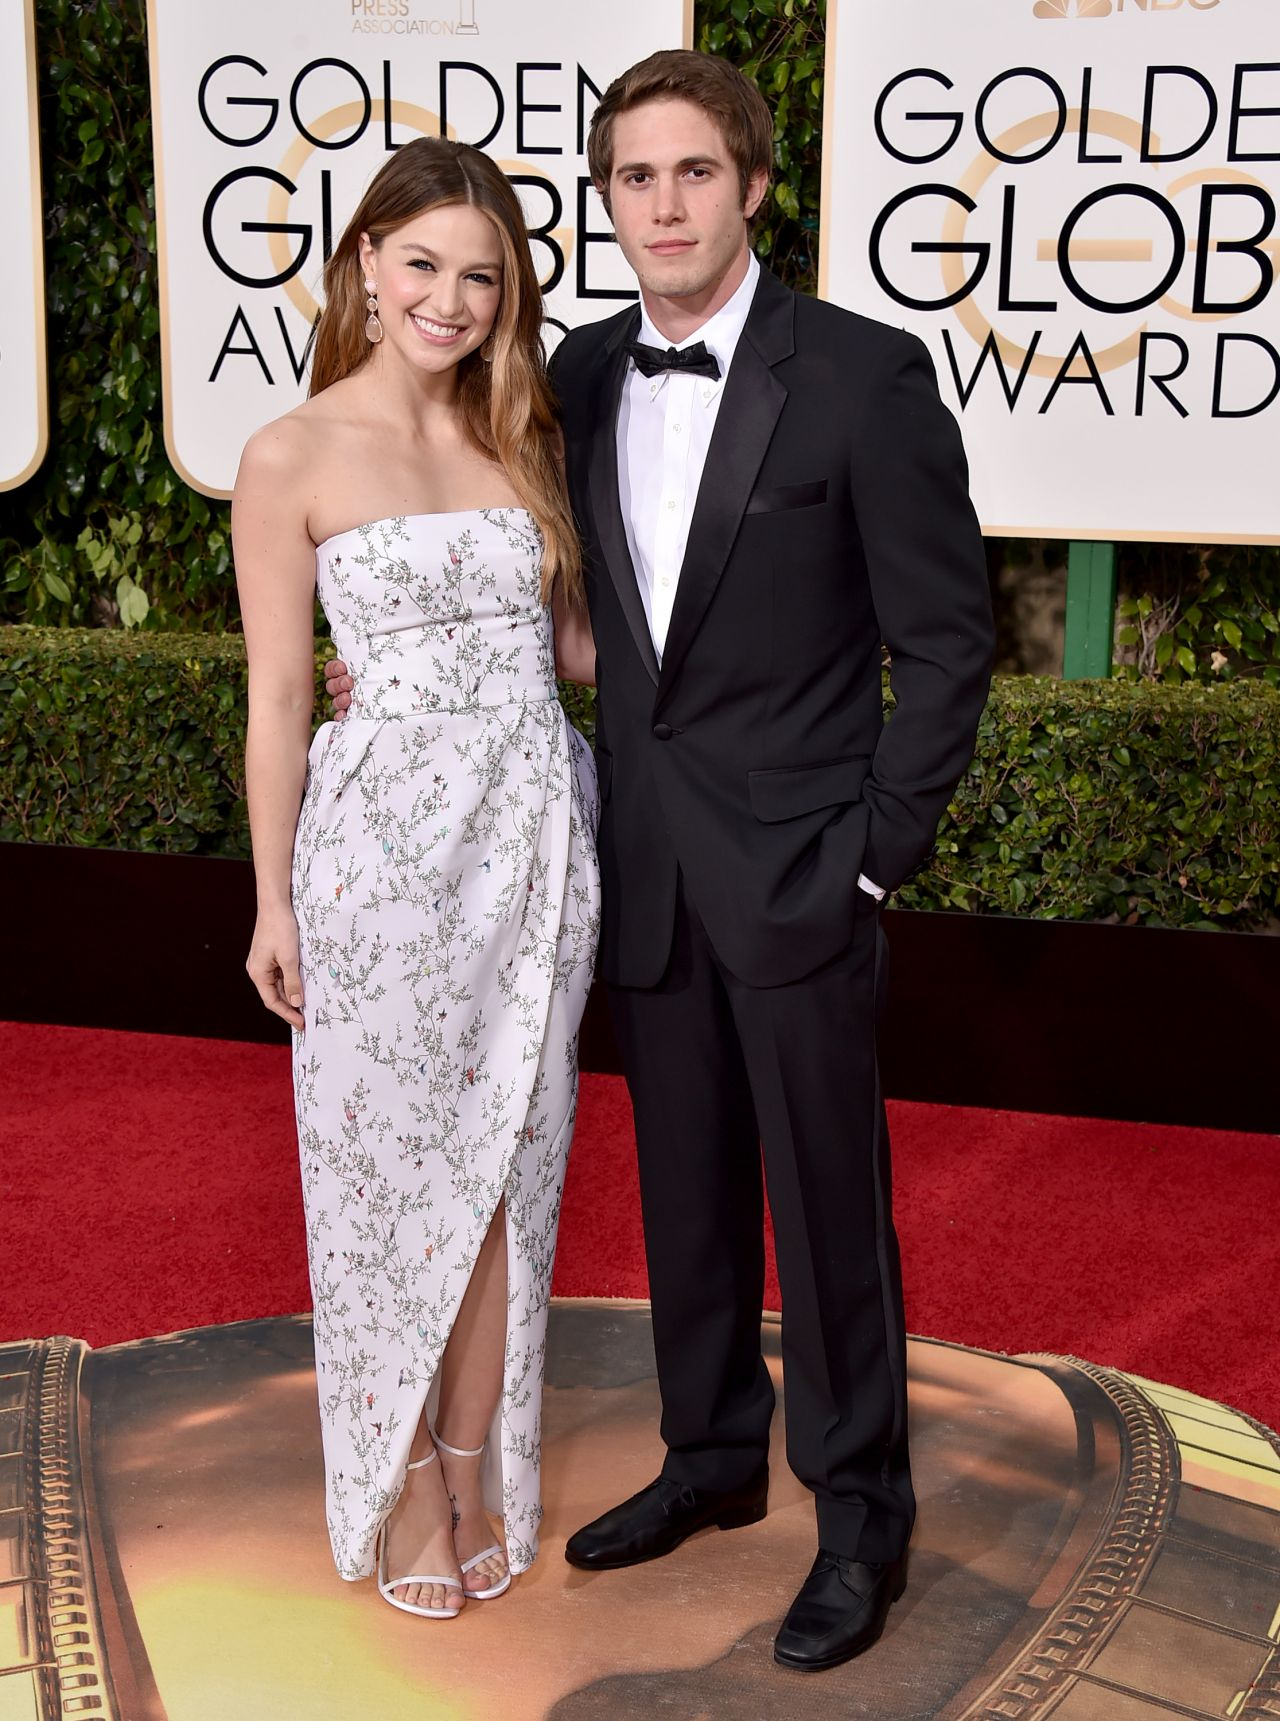 melissa-benoist-2016-golden-globe-awards-in-beverly-hills-3